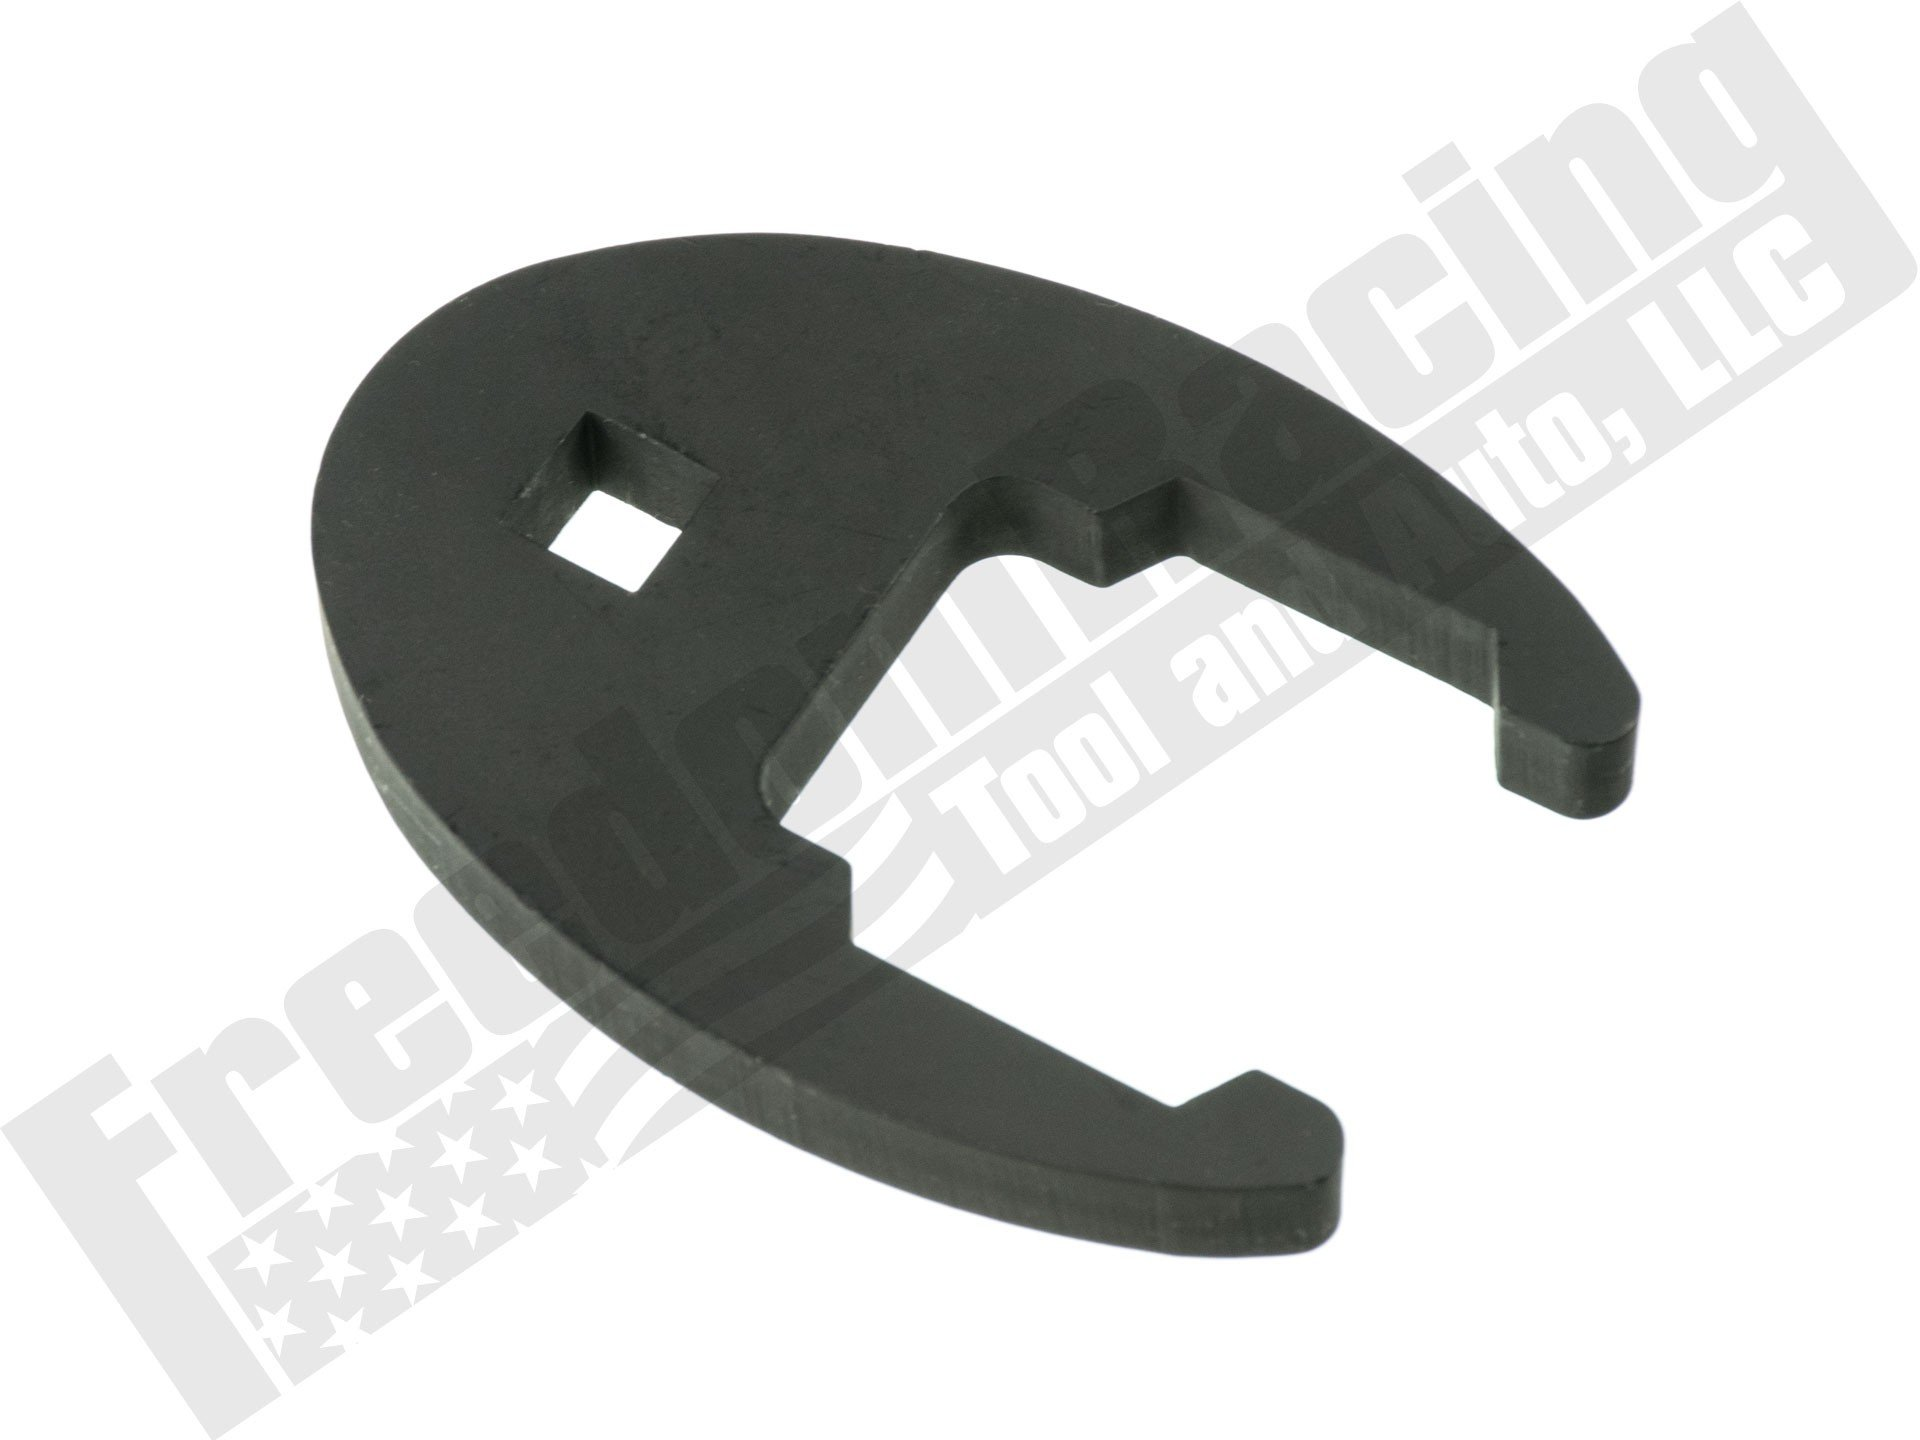 hight resolution of mh064193 fuso diesel fuel filter wrench alt